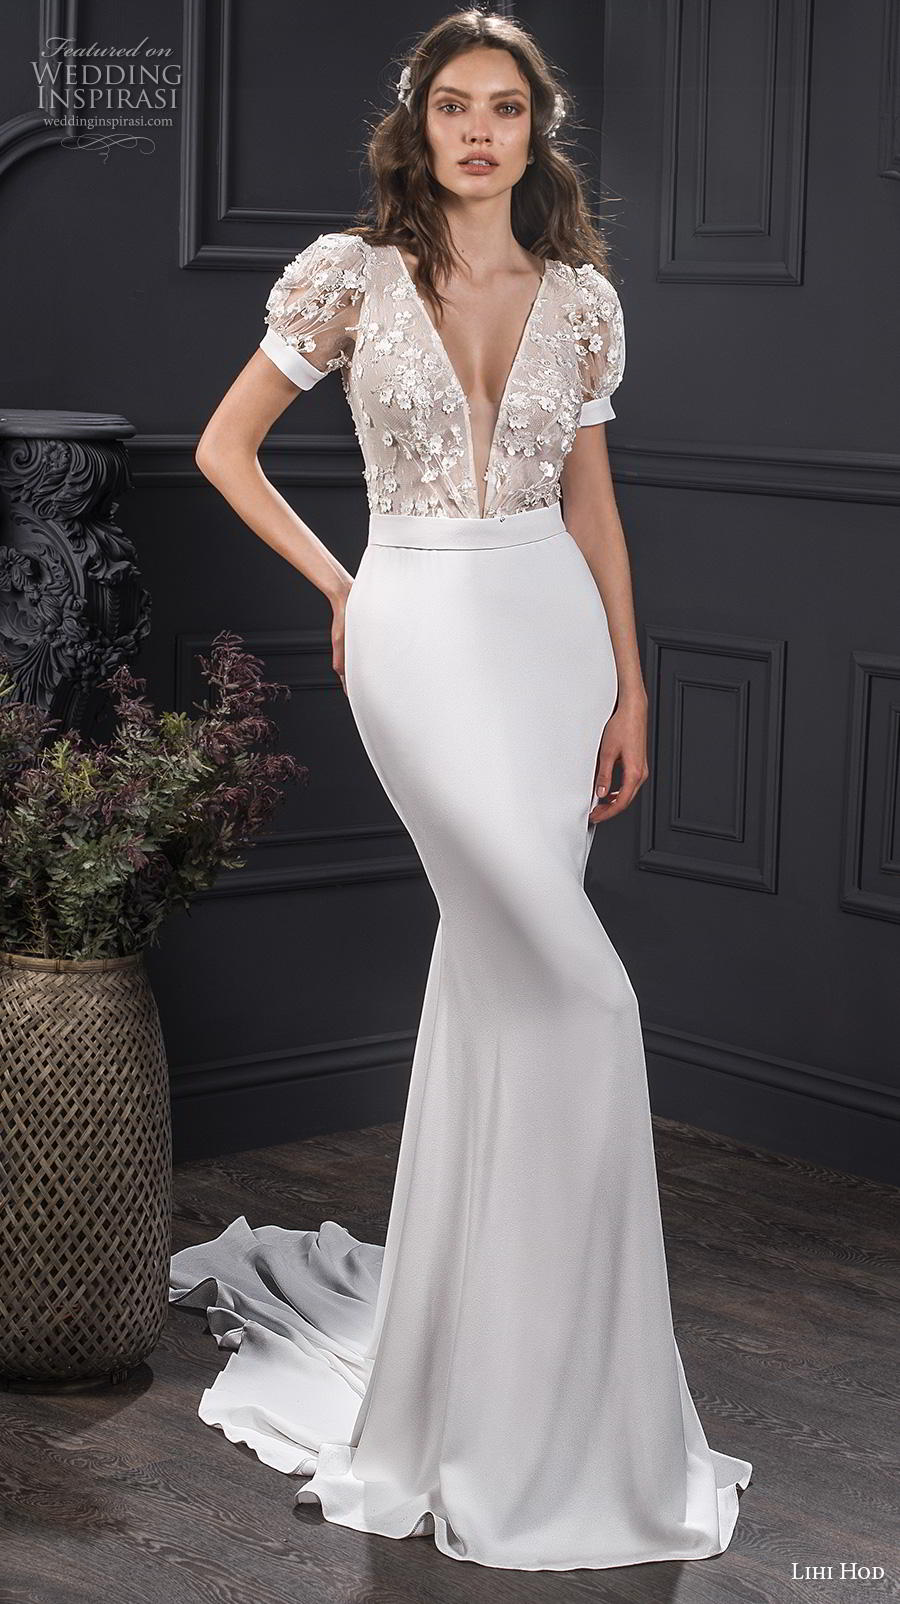 lihi hod spring 2020 bridal short puff sleeves deep v neck heavily embellshed bodice elegant sheath wedding dress medium train (4) mv